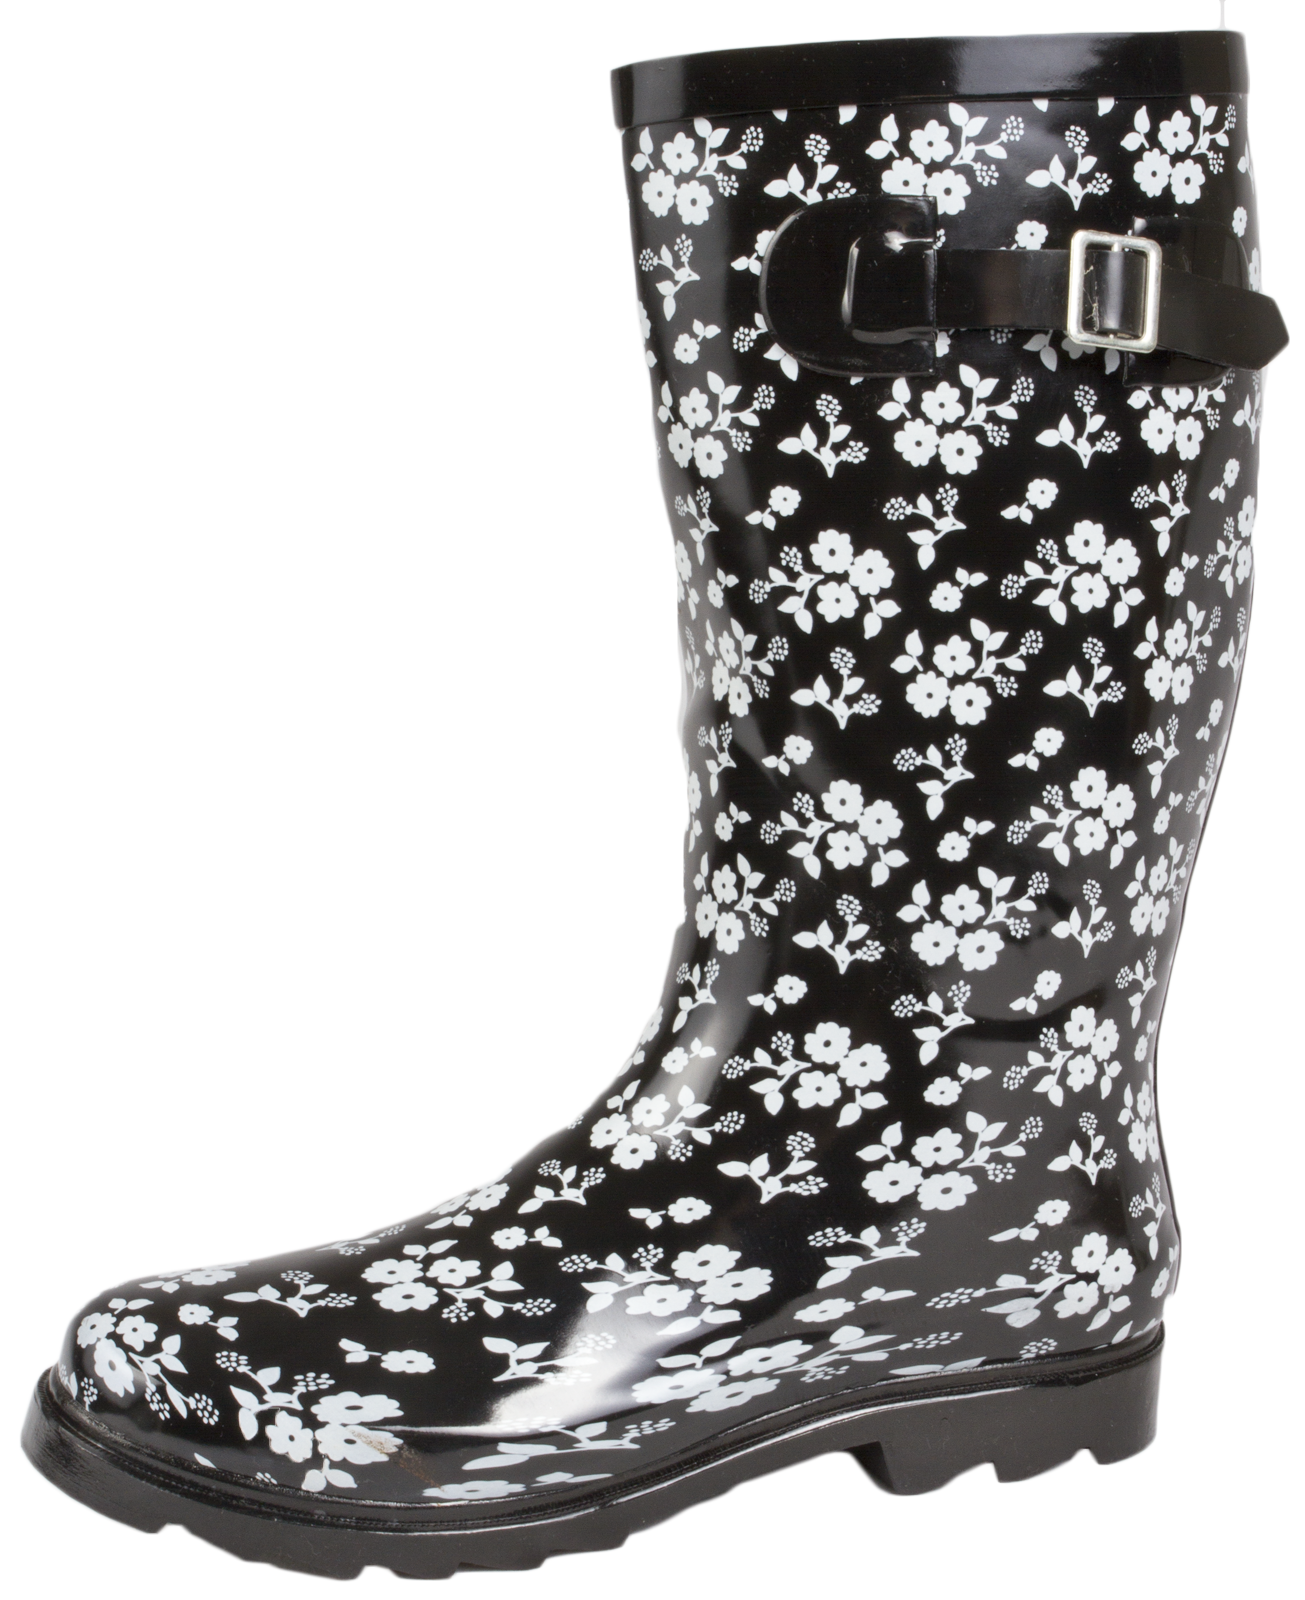 Original You Can Get Womens Rain Boots For 20 Or Less Right Now From Totsy